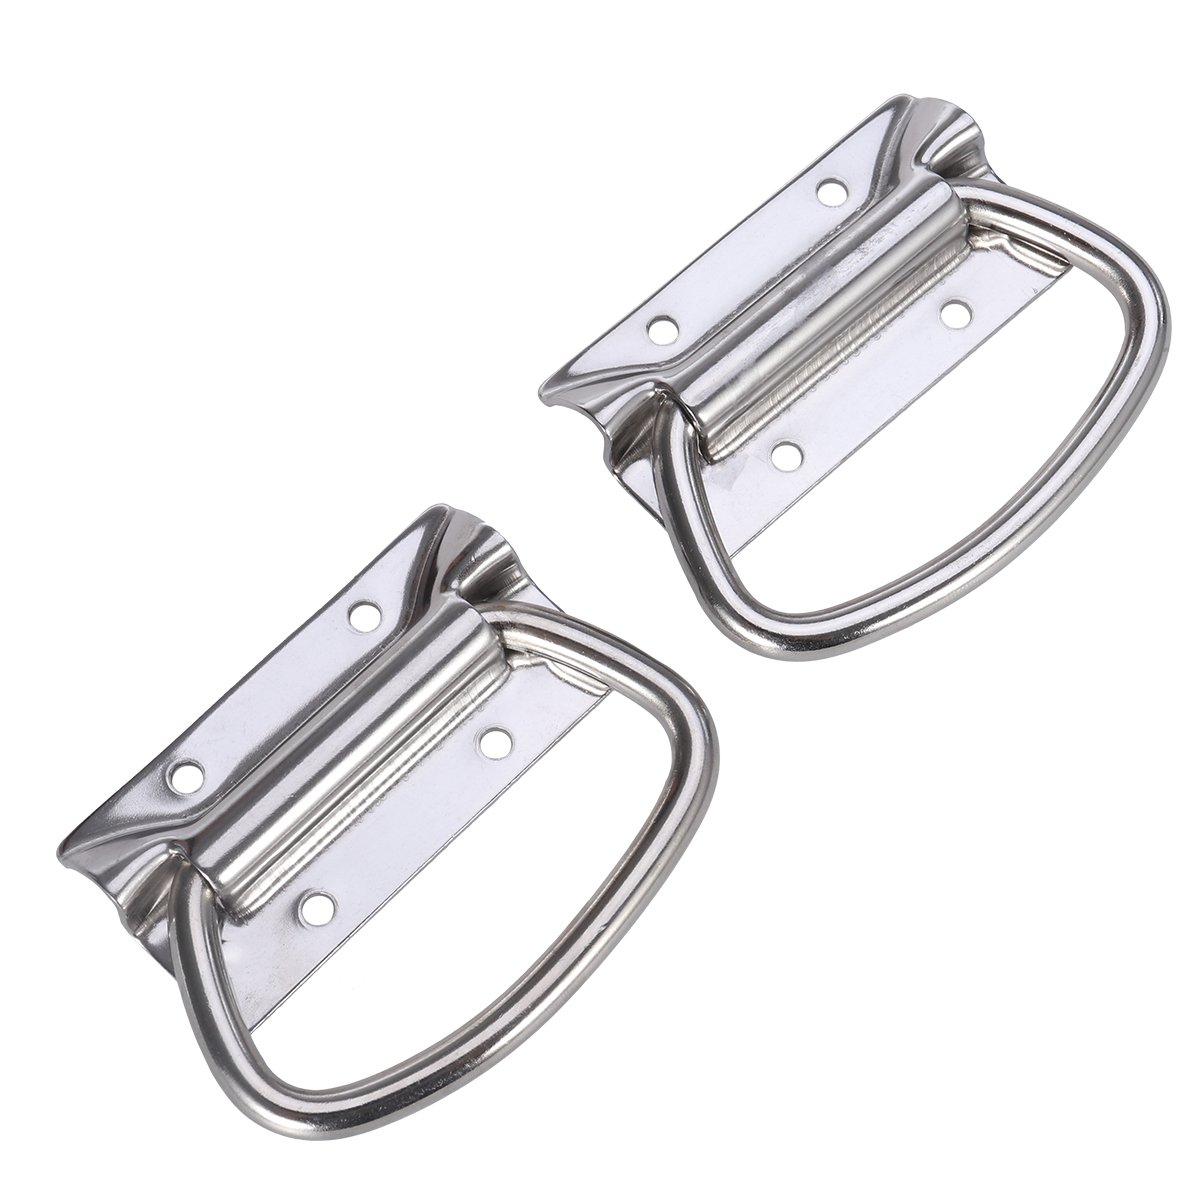 UEETEK 2pcs Stainless Steel Pull Handles Heavy Duty Sturdy Chest Handles for Toolbox Door